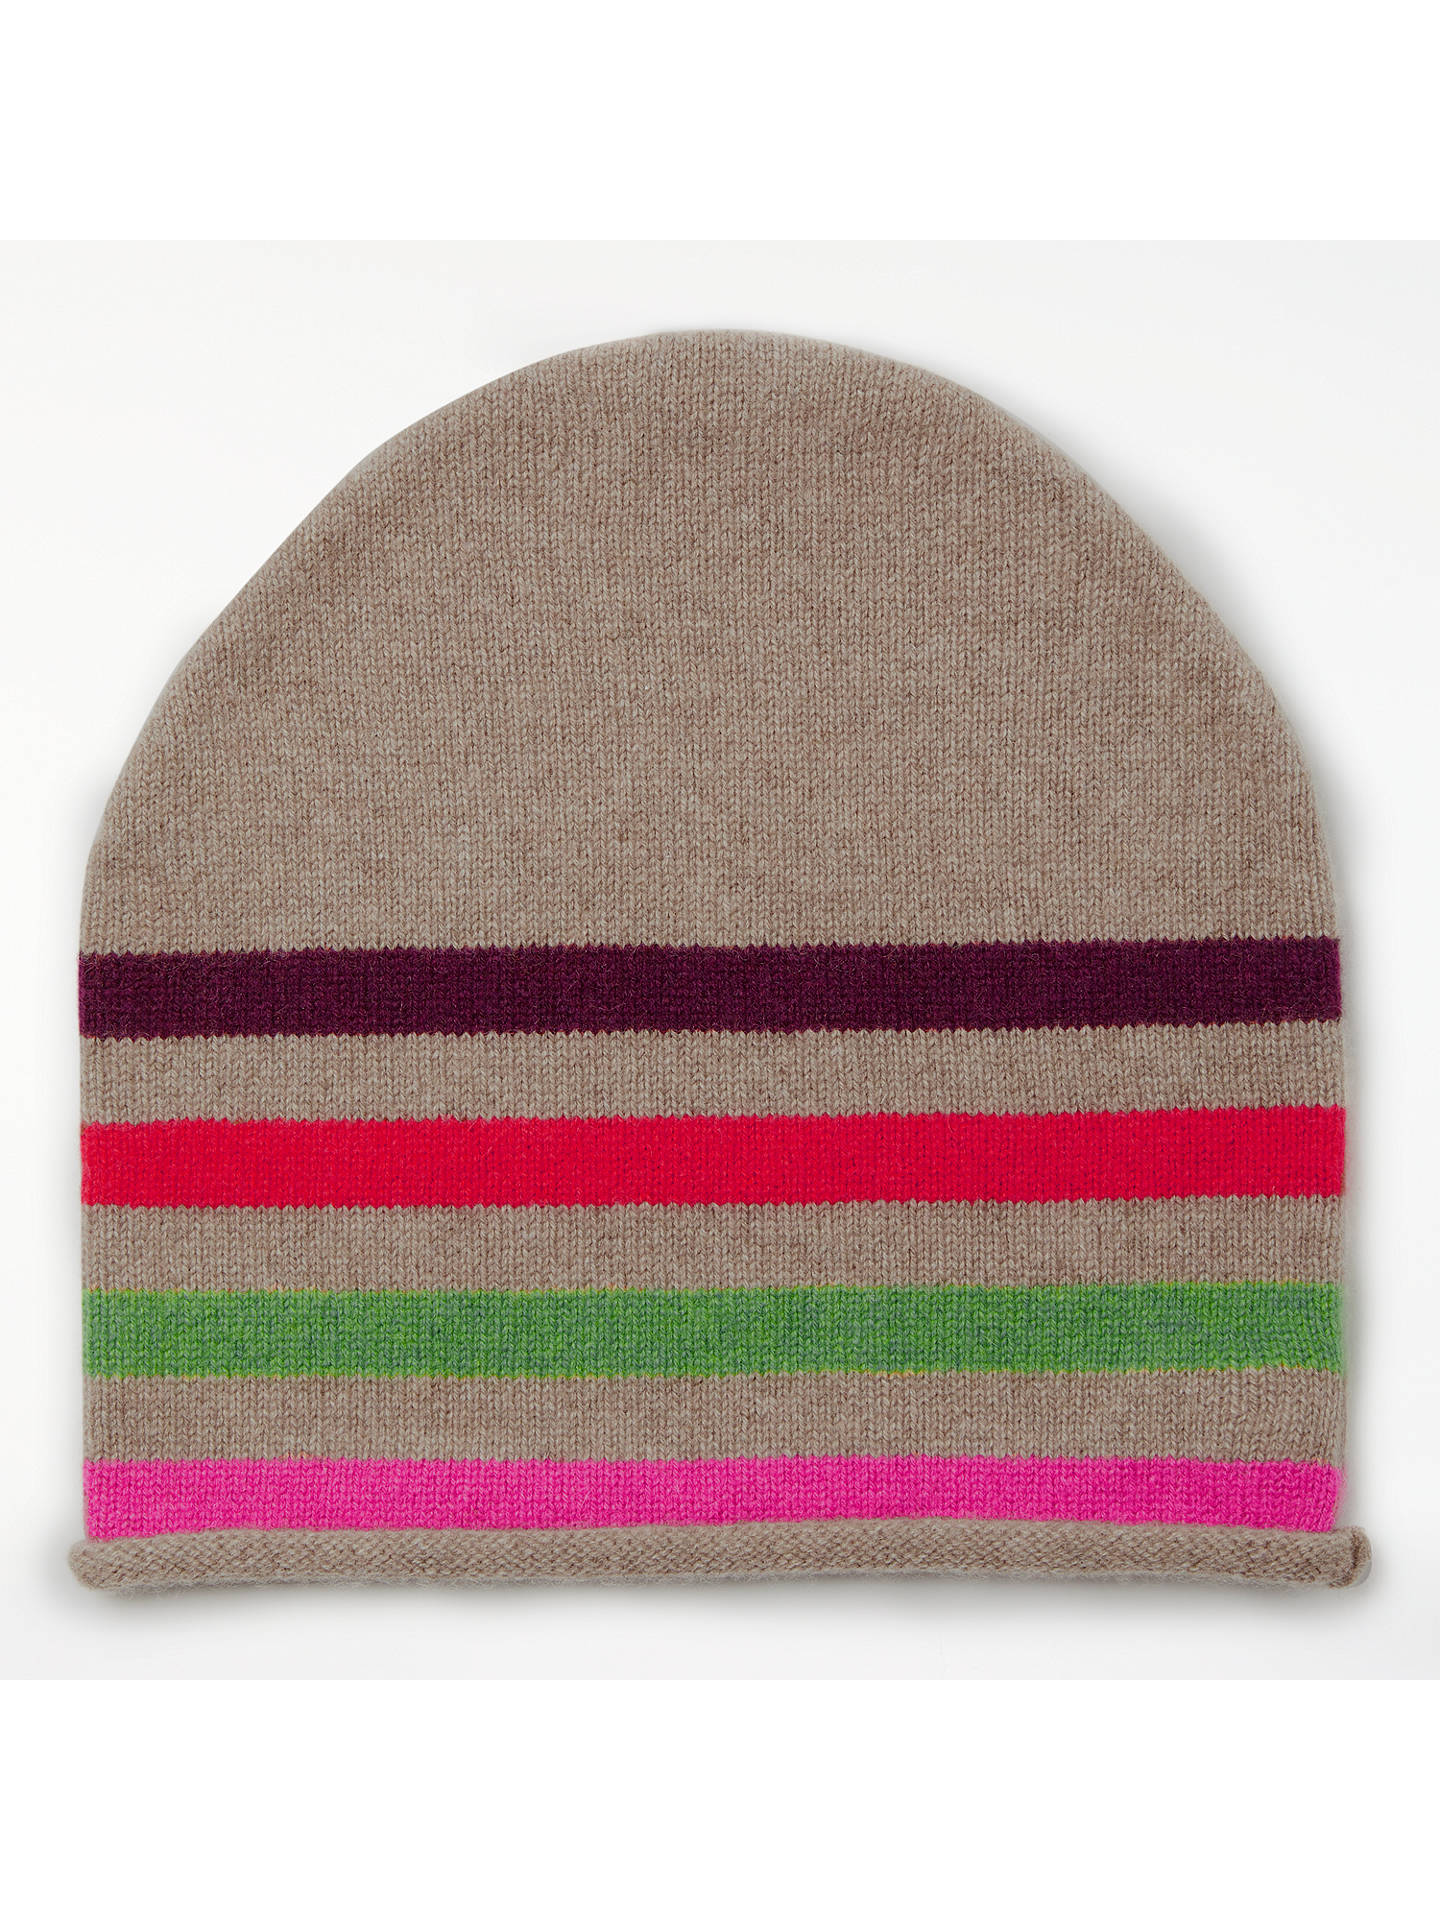 61085a4fe John Lewis & Partners Striped Cashmere Roll Beanie Hat, Multi at ...